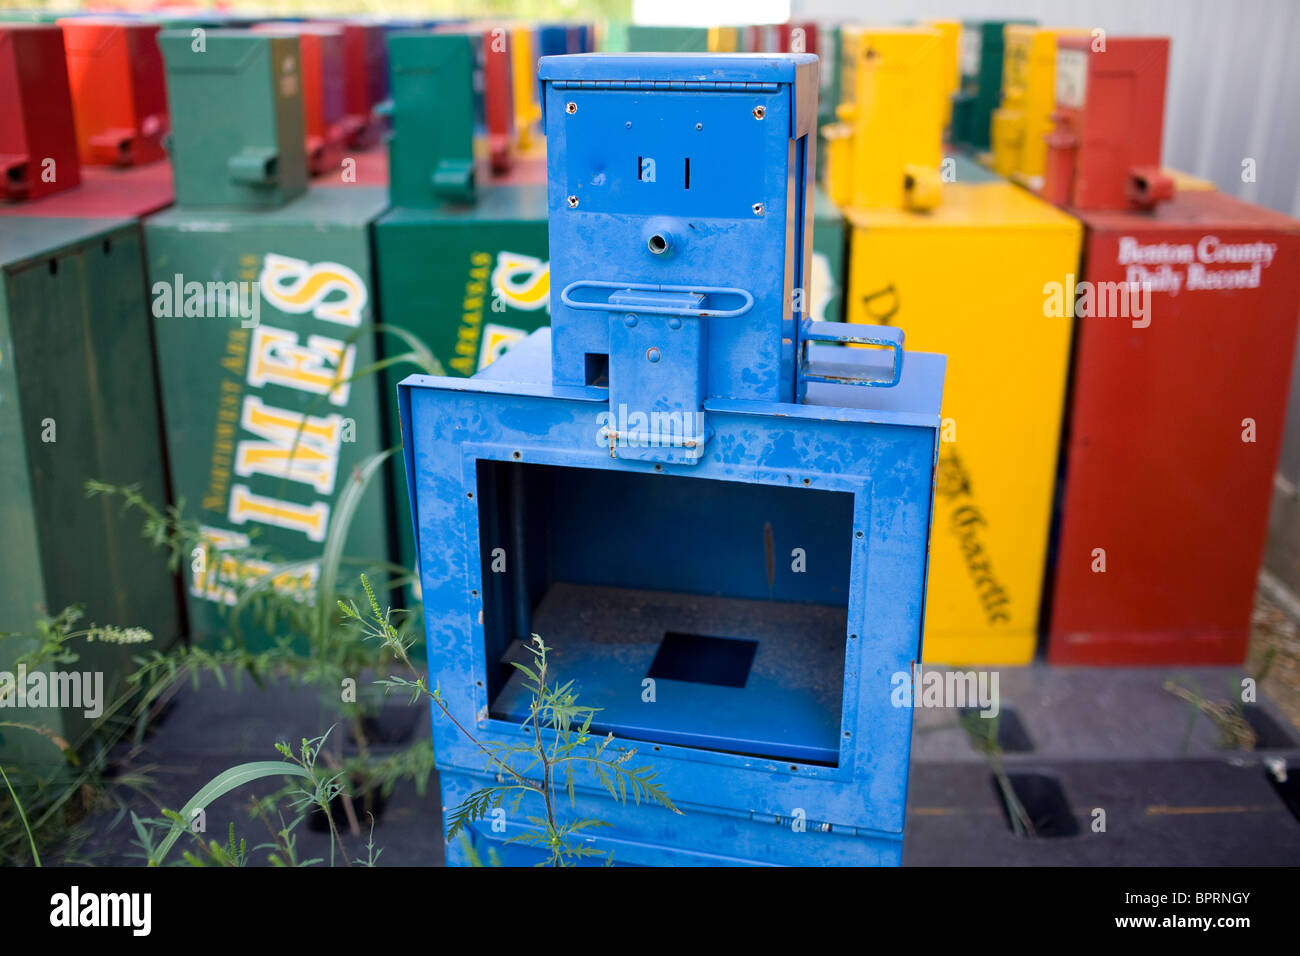 A surplus newspaper box possessing a human-like expression sits behind a building in Springdale, Ark. - Stock Image